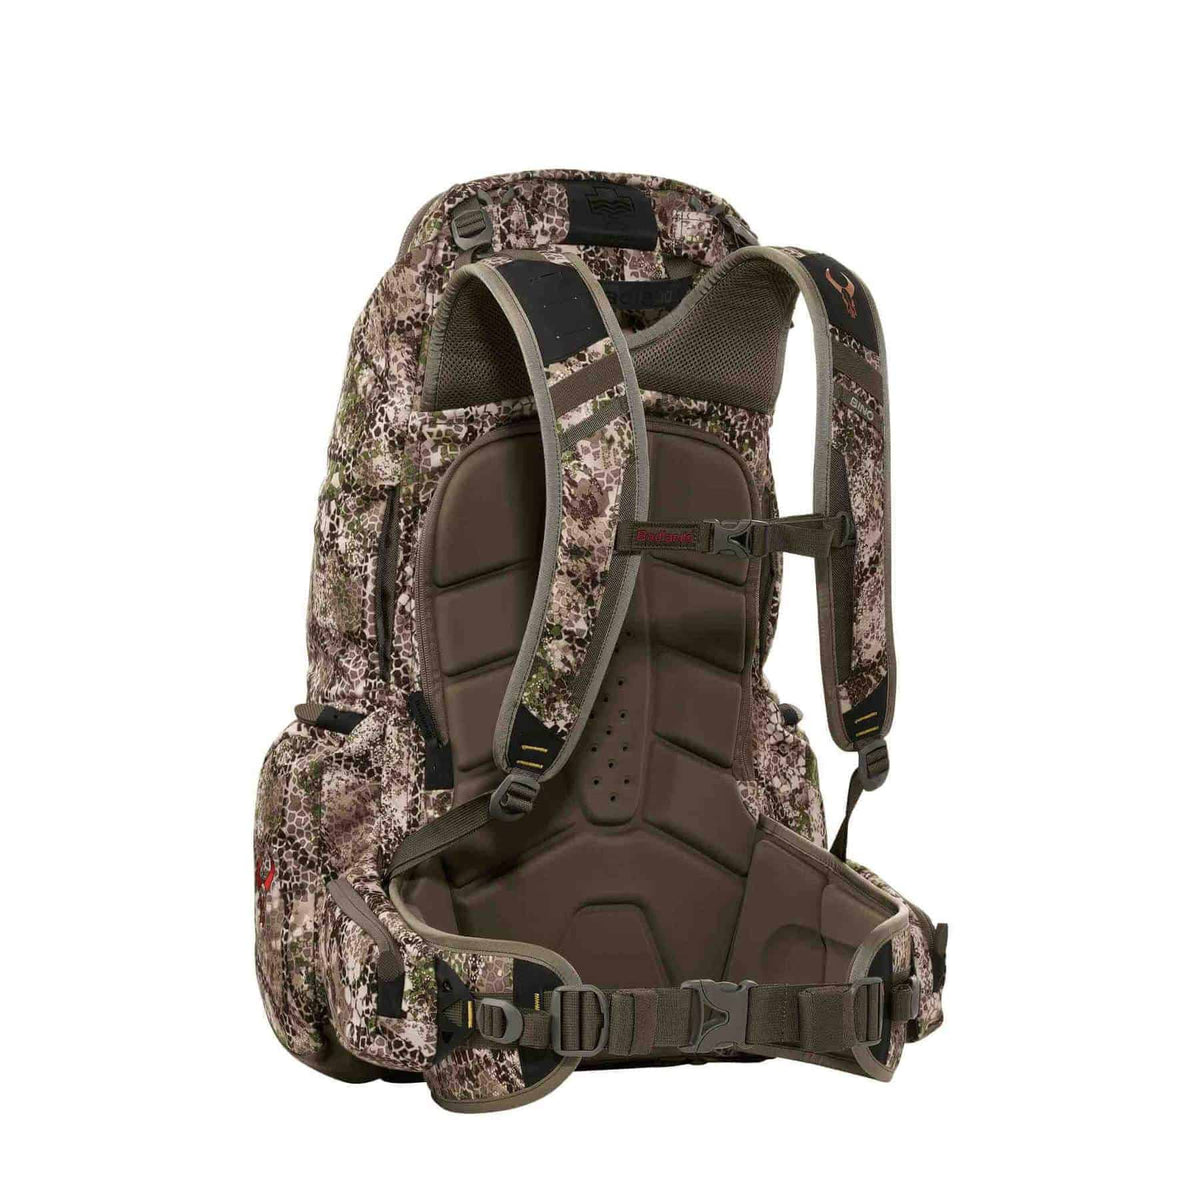 Badlands Packs 2200 Hunting Backpack 2020 Model Approach Camo Front